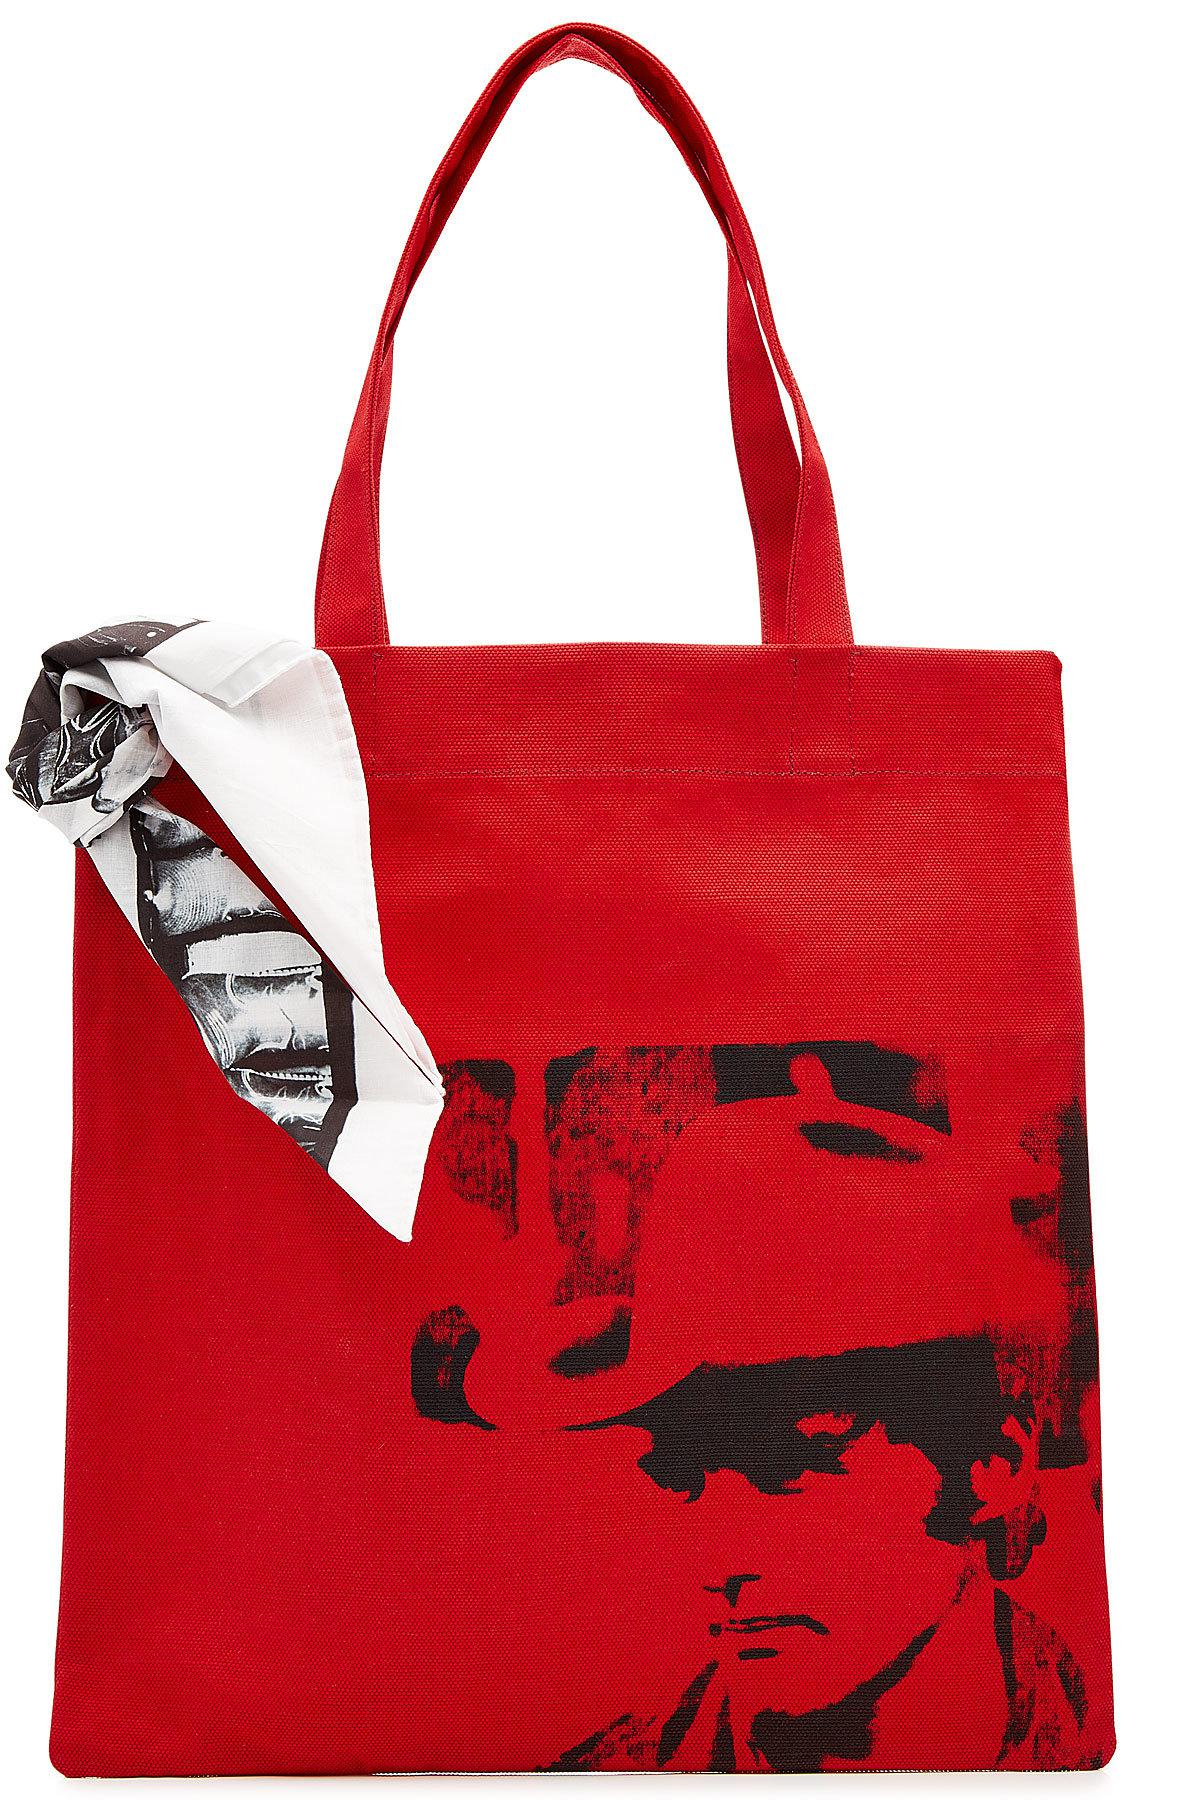 CALVIN KLEIN 205W39NYC Calvin Klein 205W39NYC x Andy Warhol Little Electric Chair tote bag - Red Ivxszapoxx